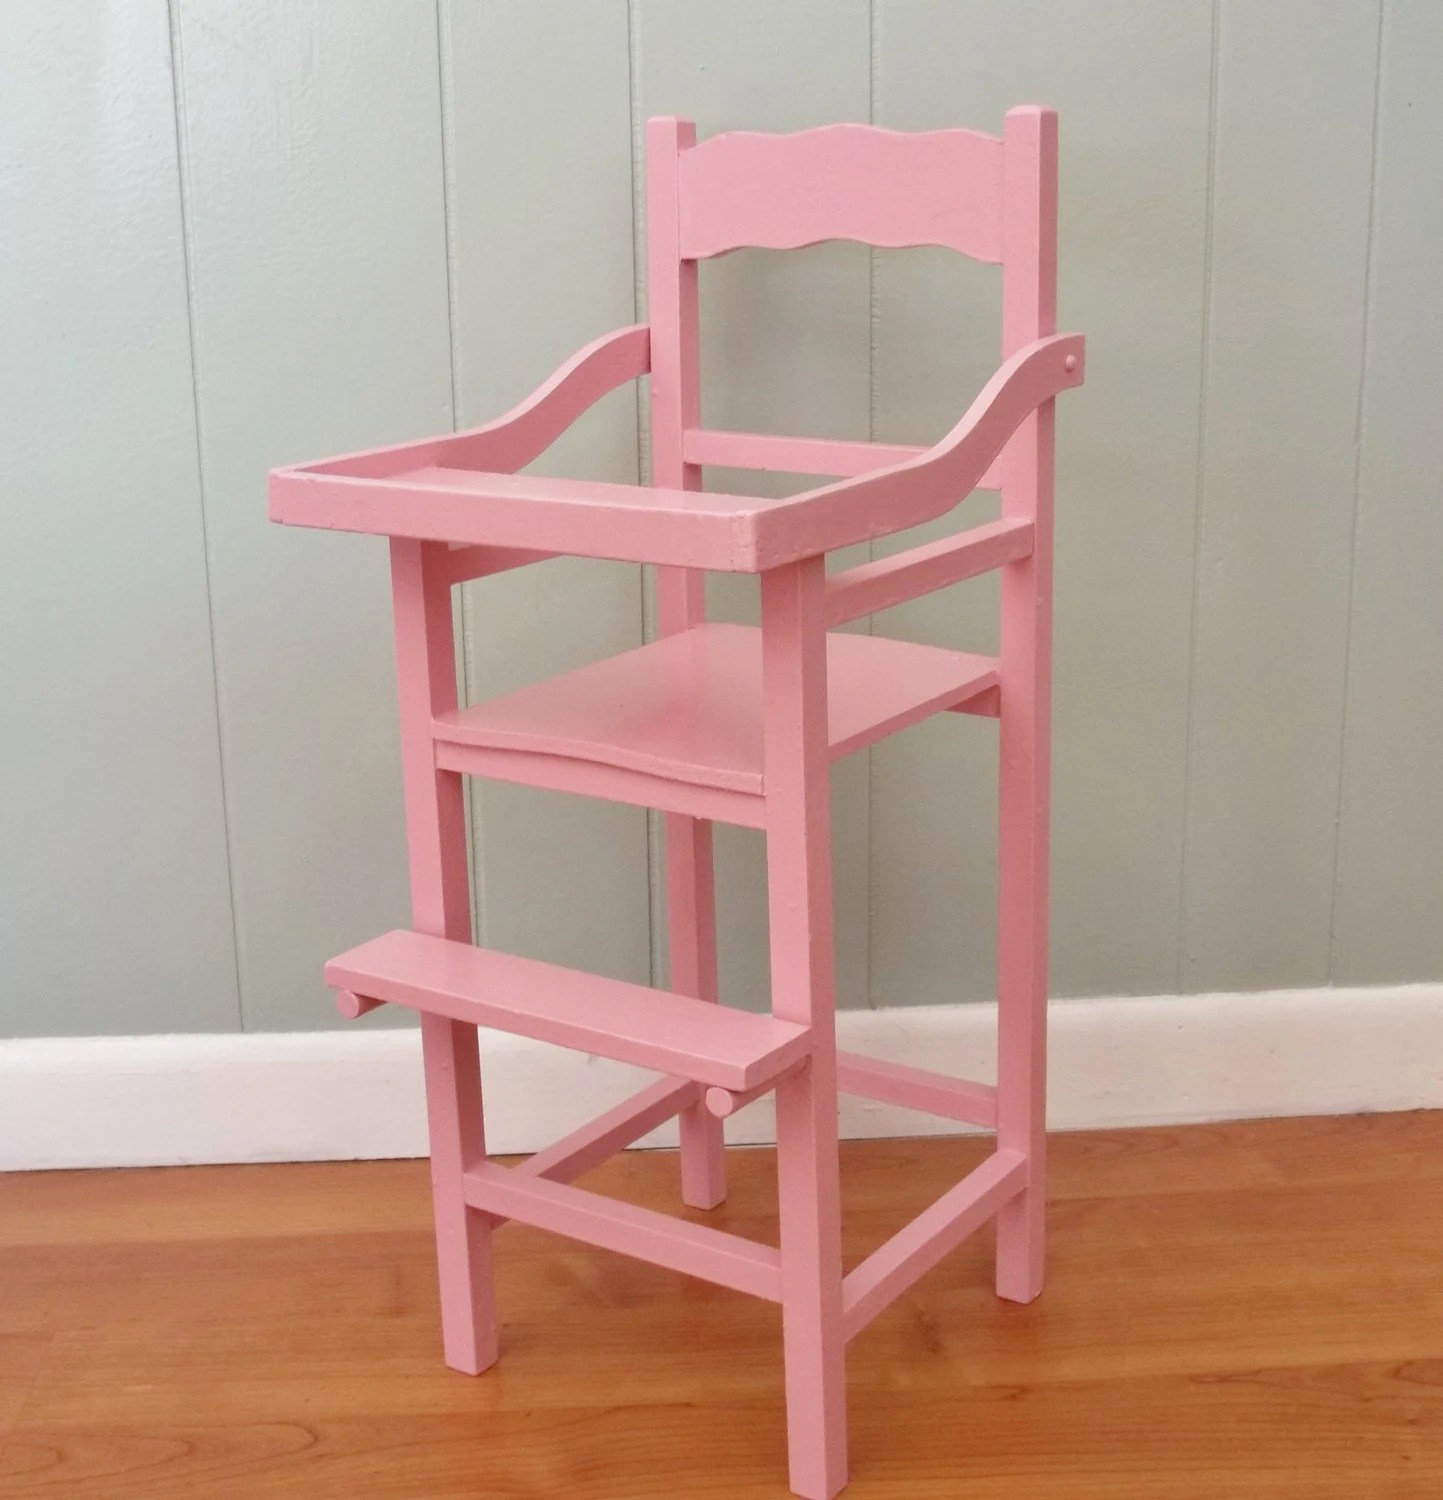 high chair for dolls husk replica wooden wood doll highchair is an upcycled vintage